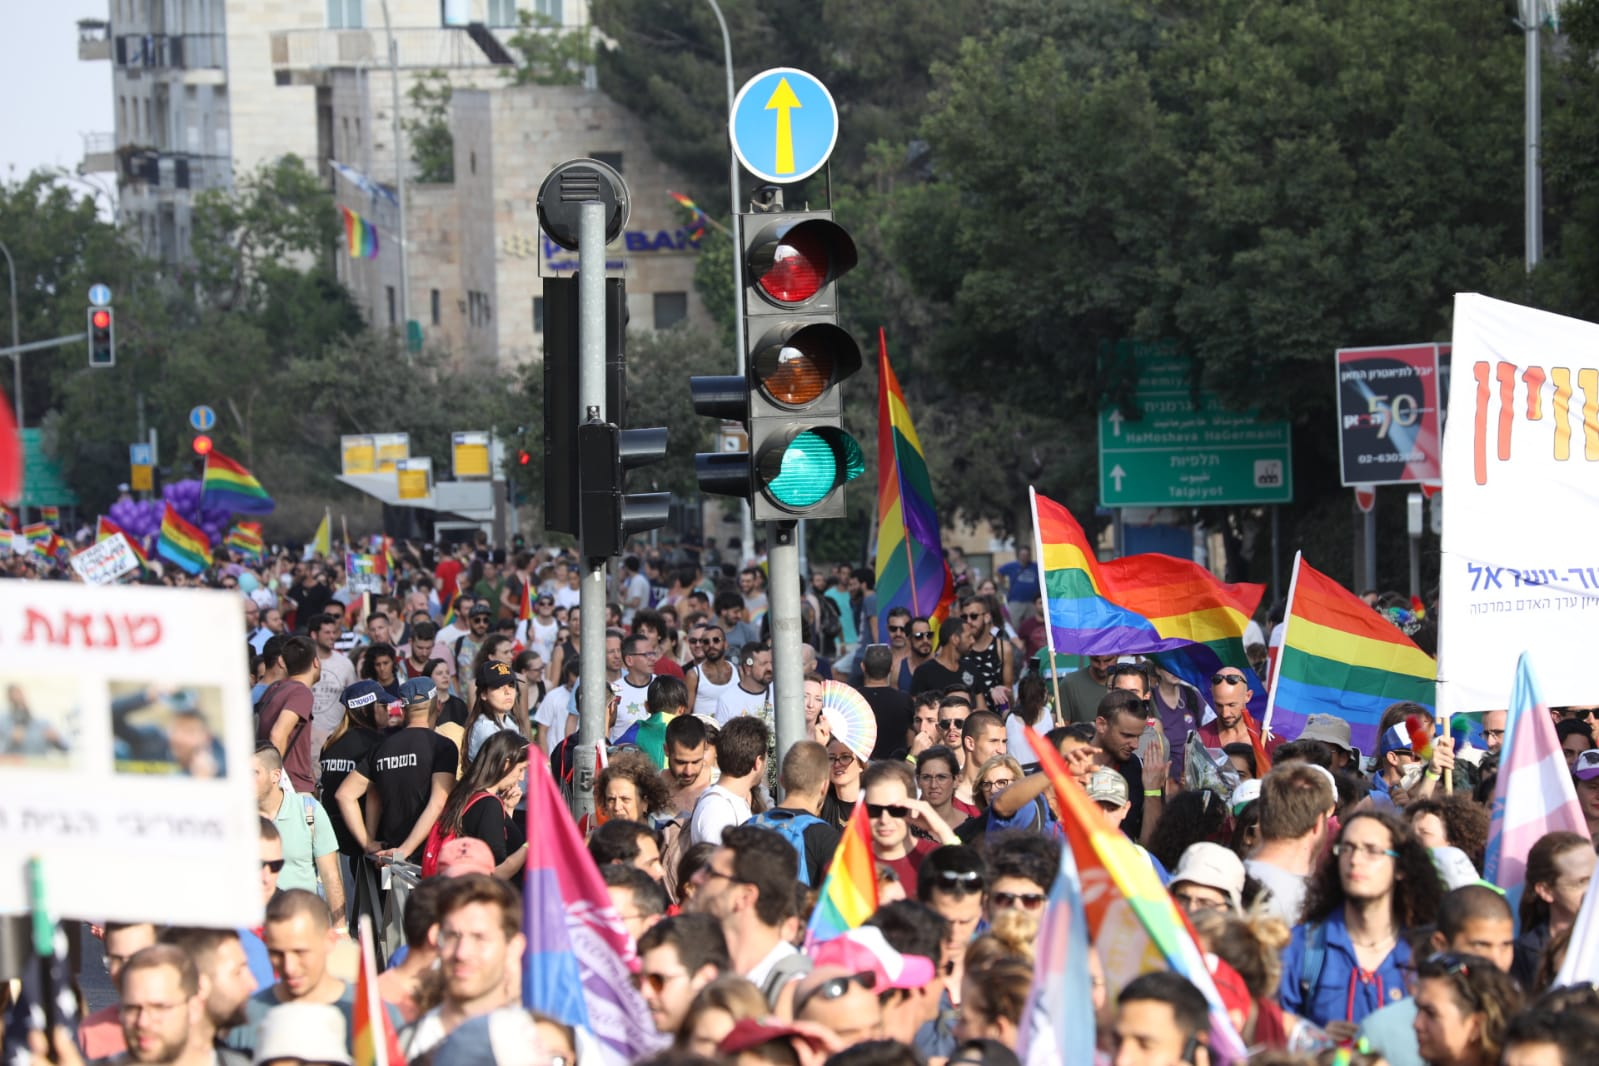 Over 20,000 participate in the largest Jerusalem Pride March yet, August 2, 2018. (Oren Ziv/Activestills.org)